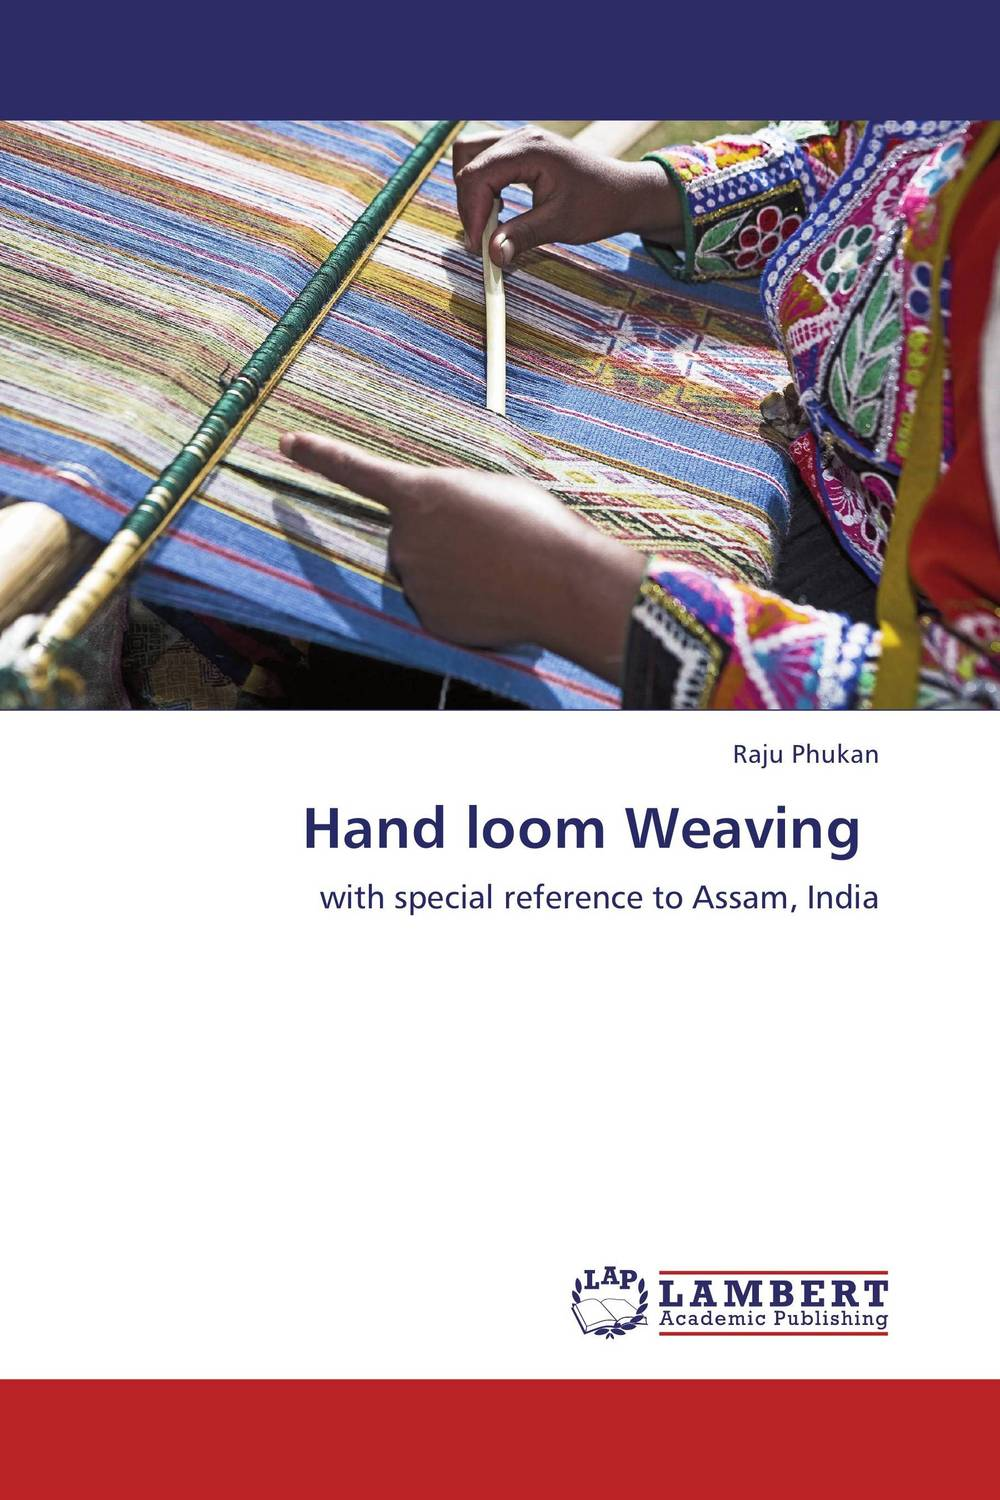 Hand loom Weaving шорты quelle fruit of the loom 476845